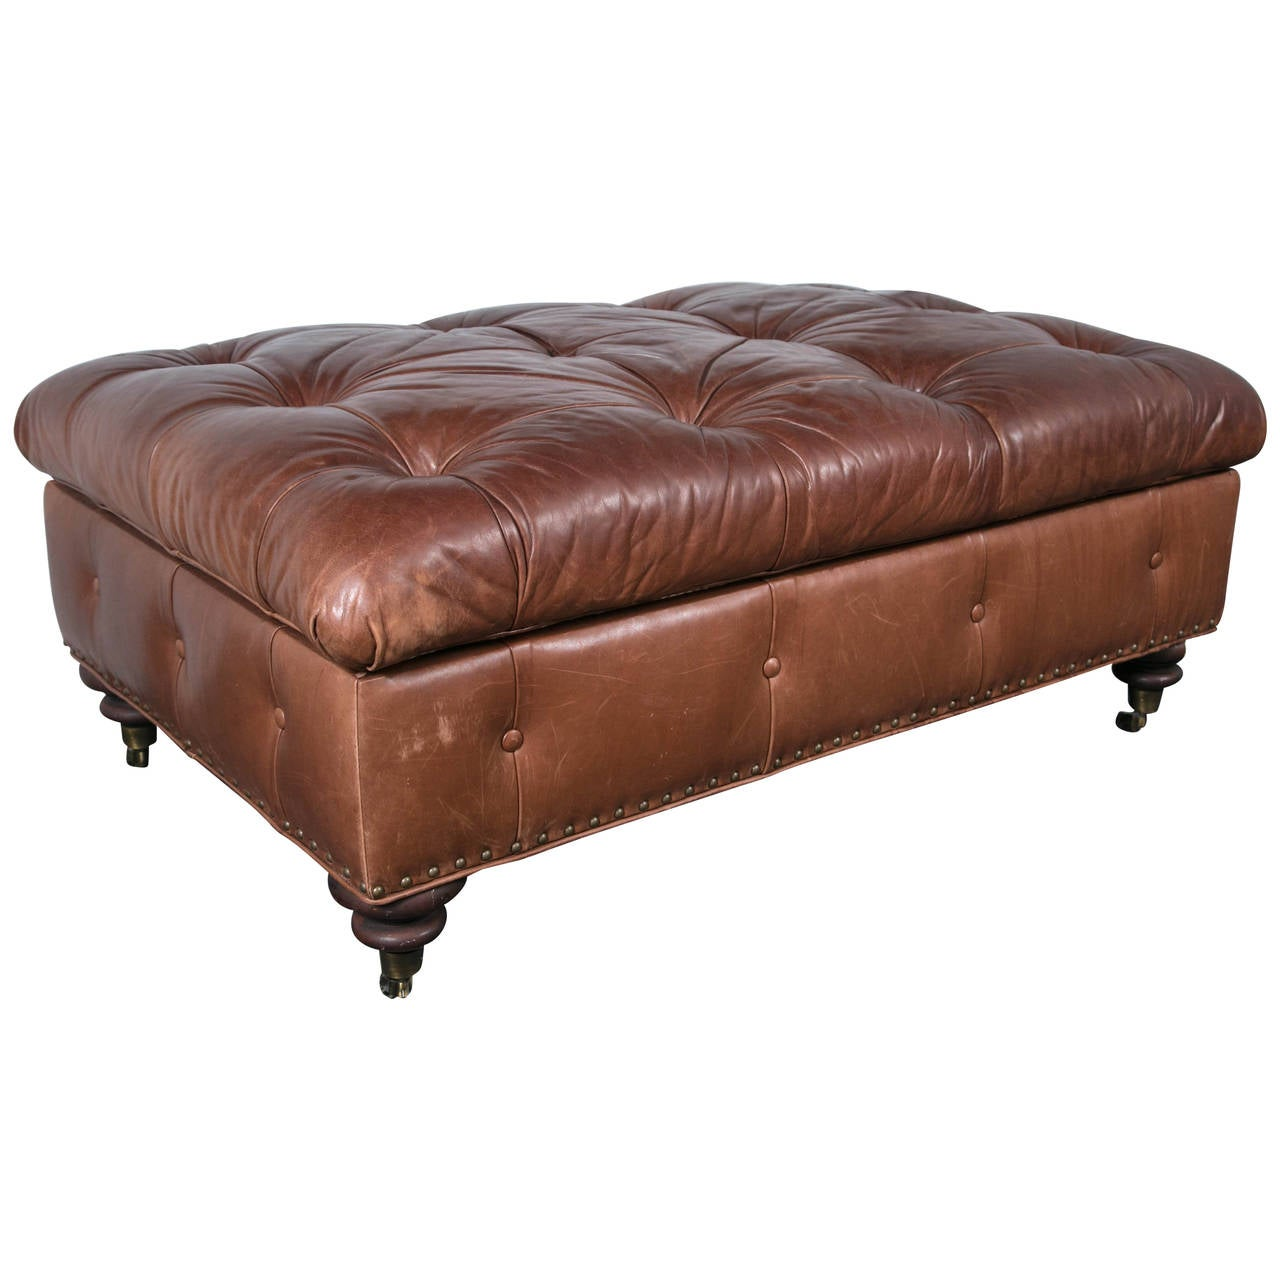 Ralph Lauren Leather Storage Ottoman Bench At 1stdibs